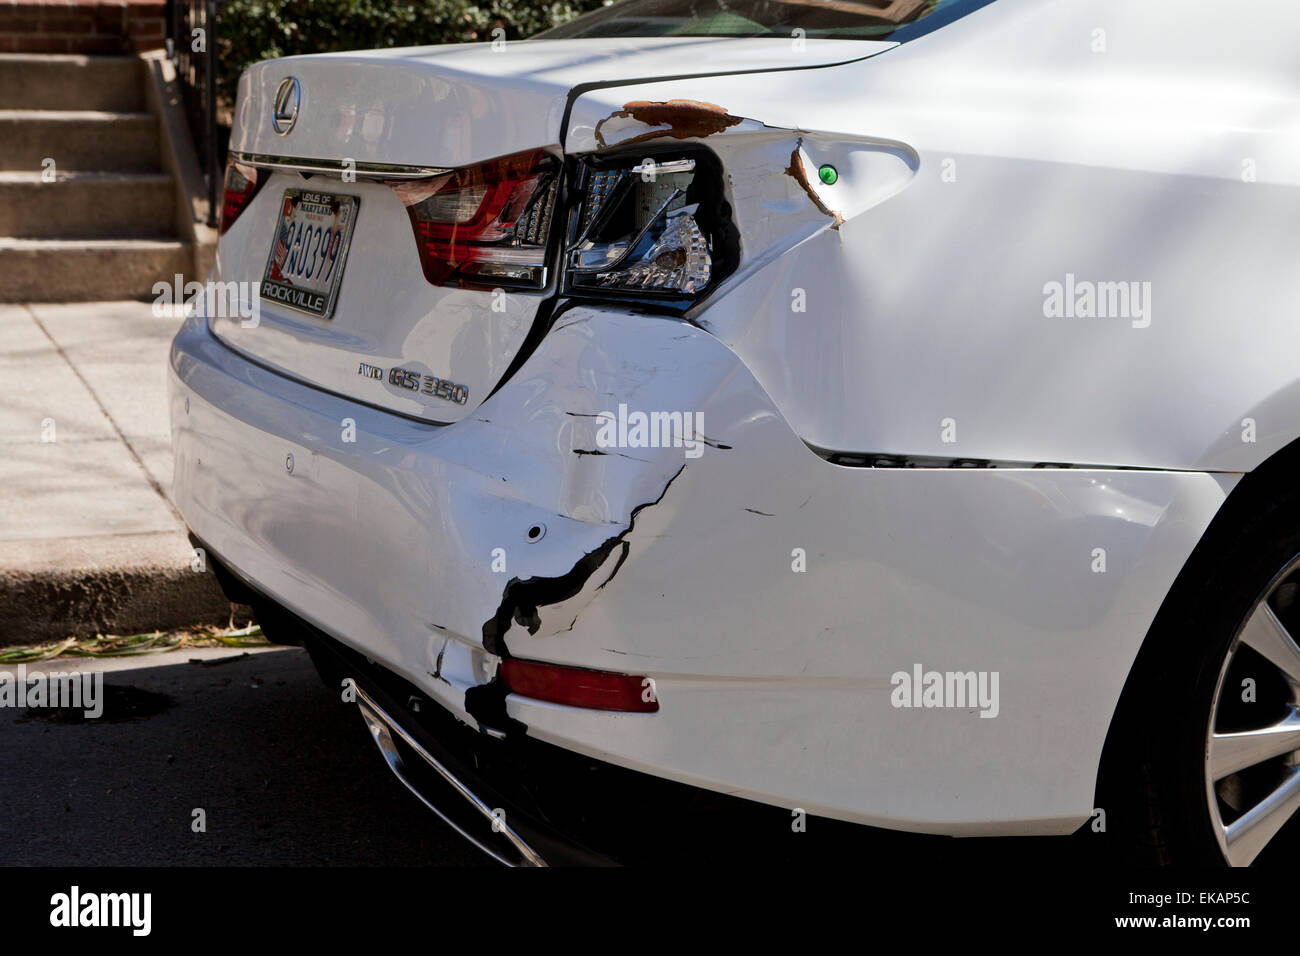 Car accident damage on rear end - USA - Stock Image